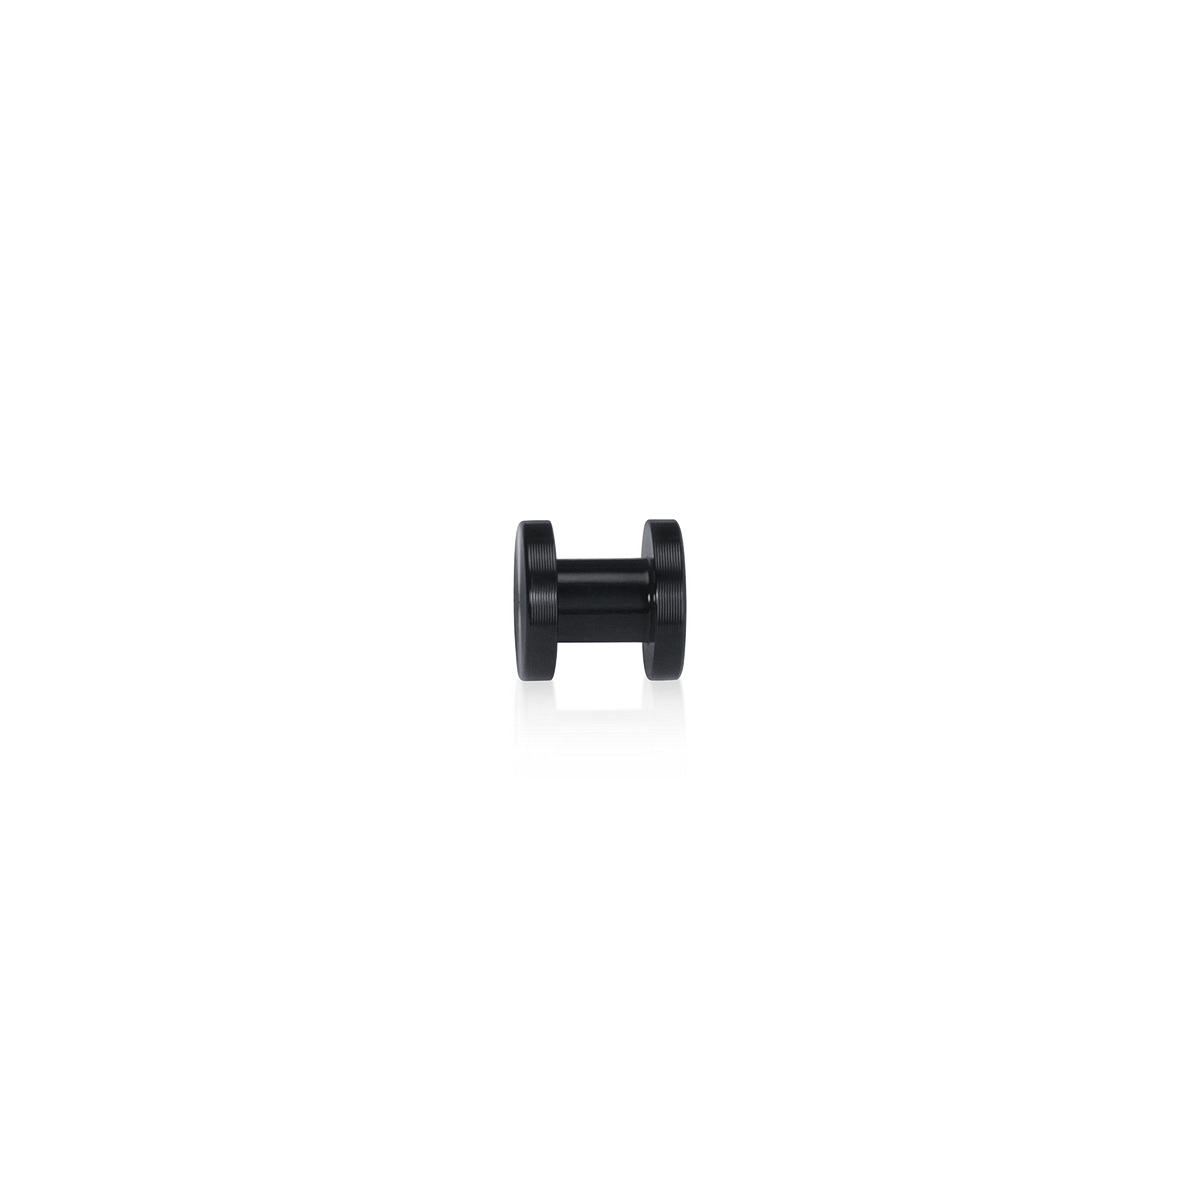 Flat Head Material Connector Aluminum Black Anodized Finish